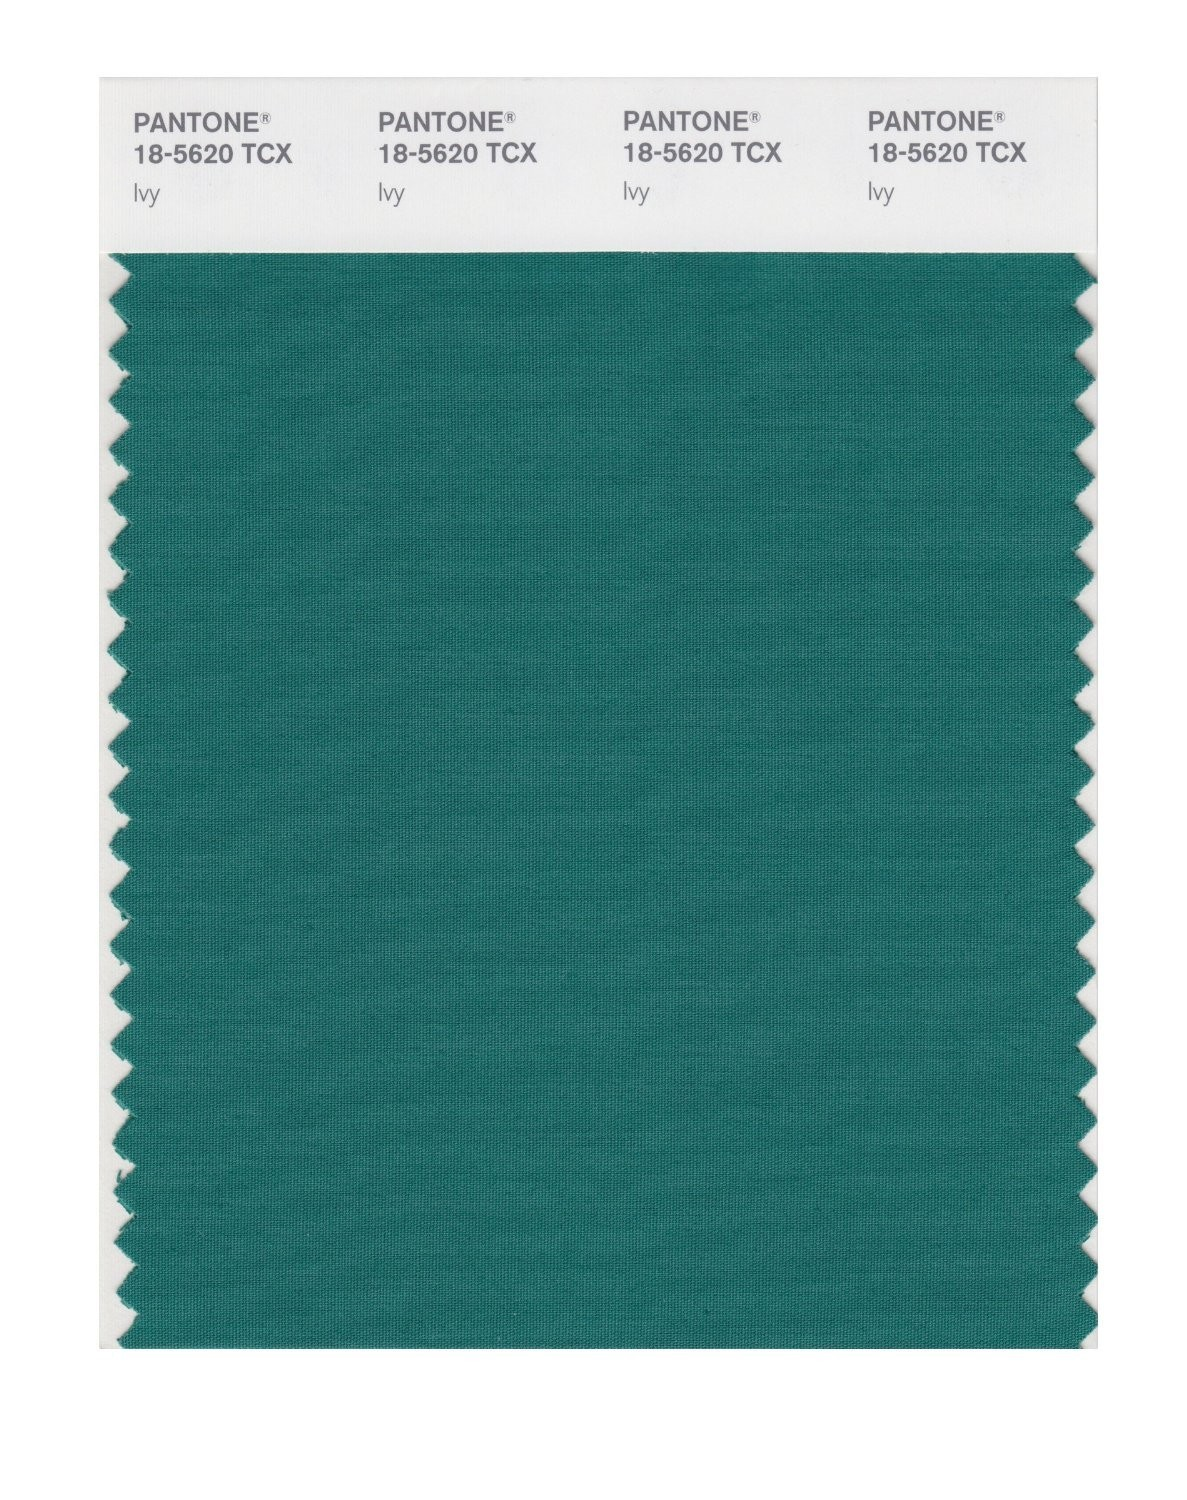 Pantone 18-5620 TCX Swatch Card Ivy